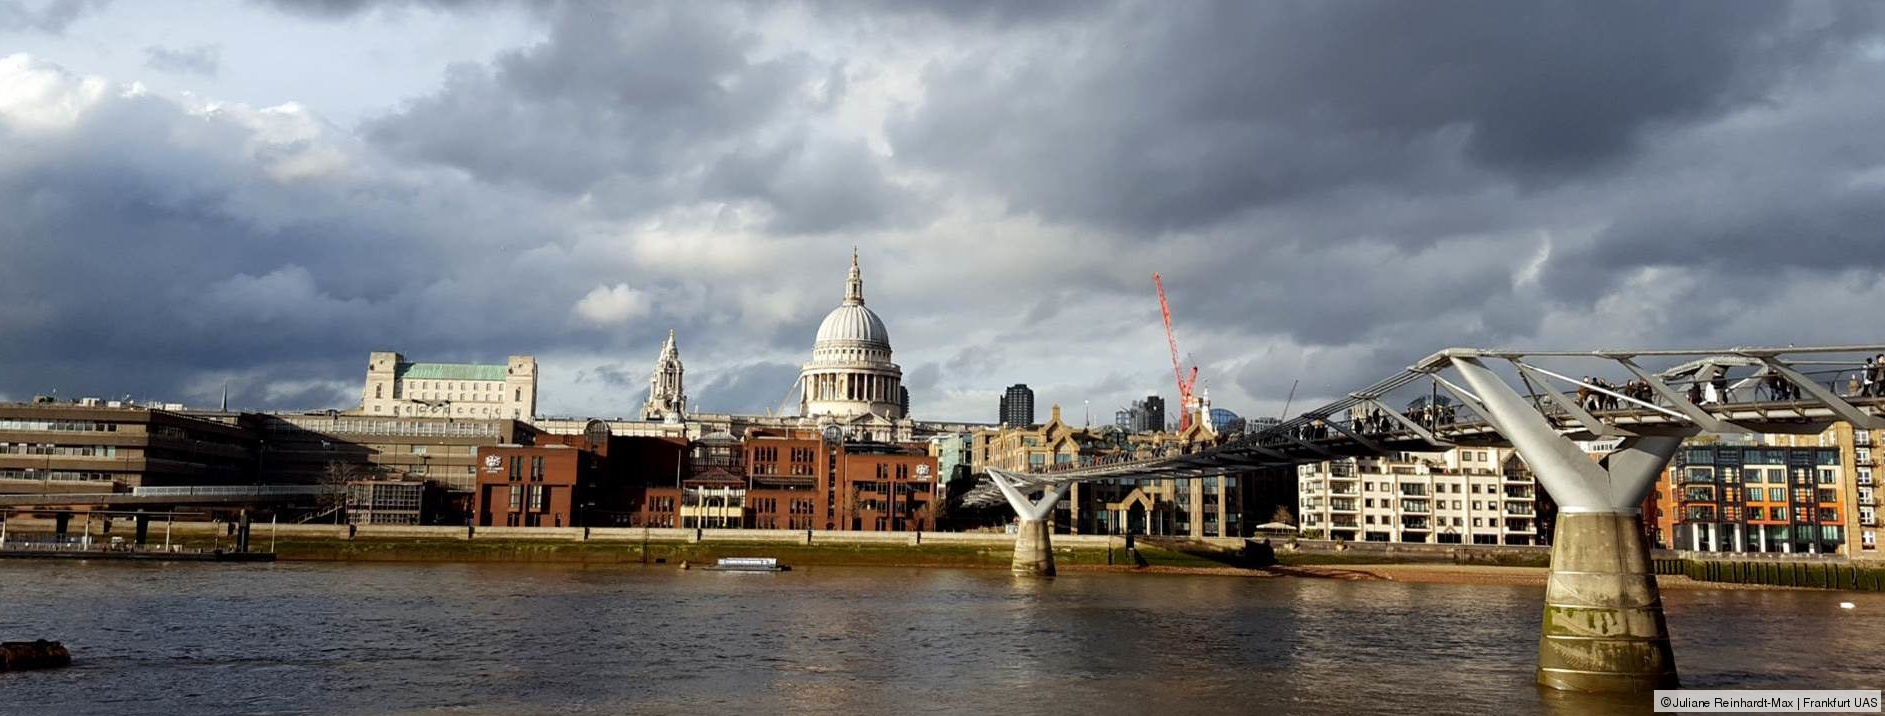 Blick auf St. Pauls in London